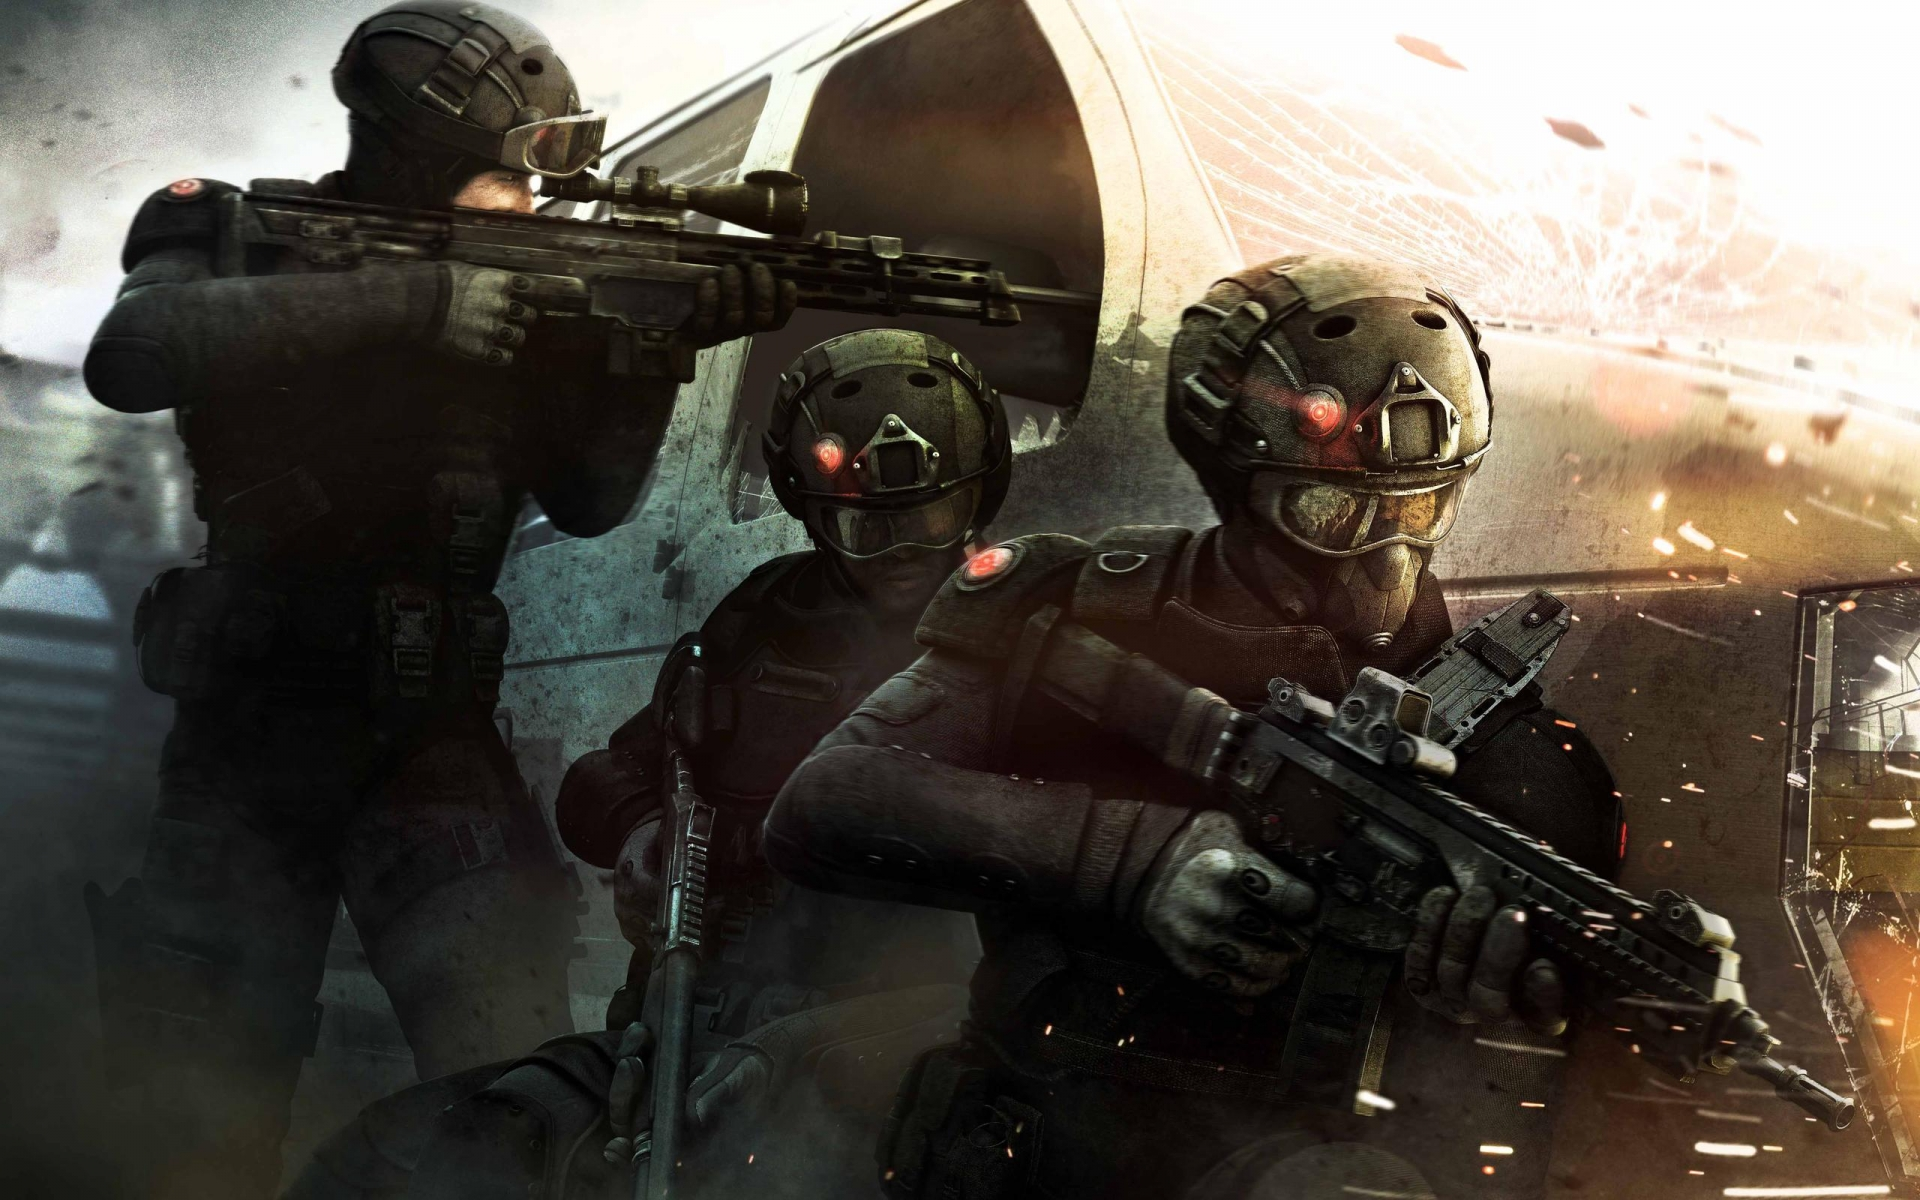 Tom Clancy's Rainbow Six Siege Patriots for 1920 x 1200 widescreen resolution